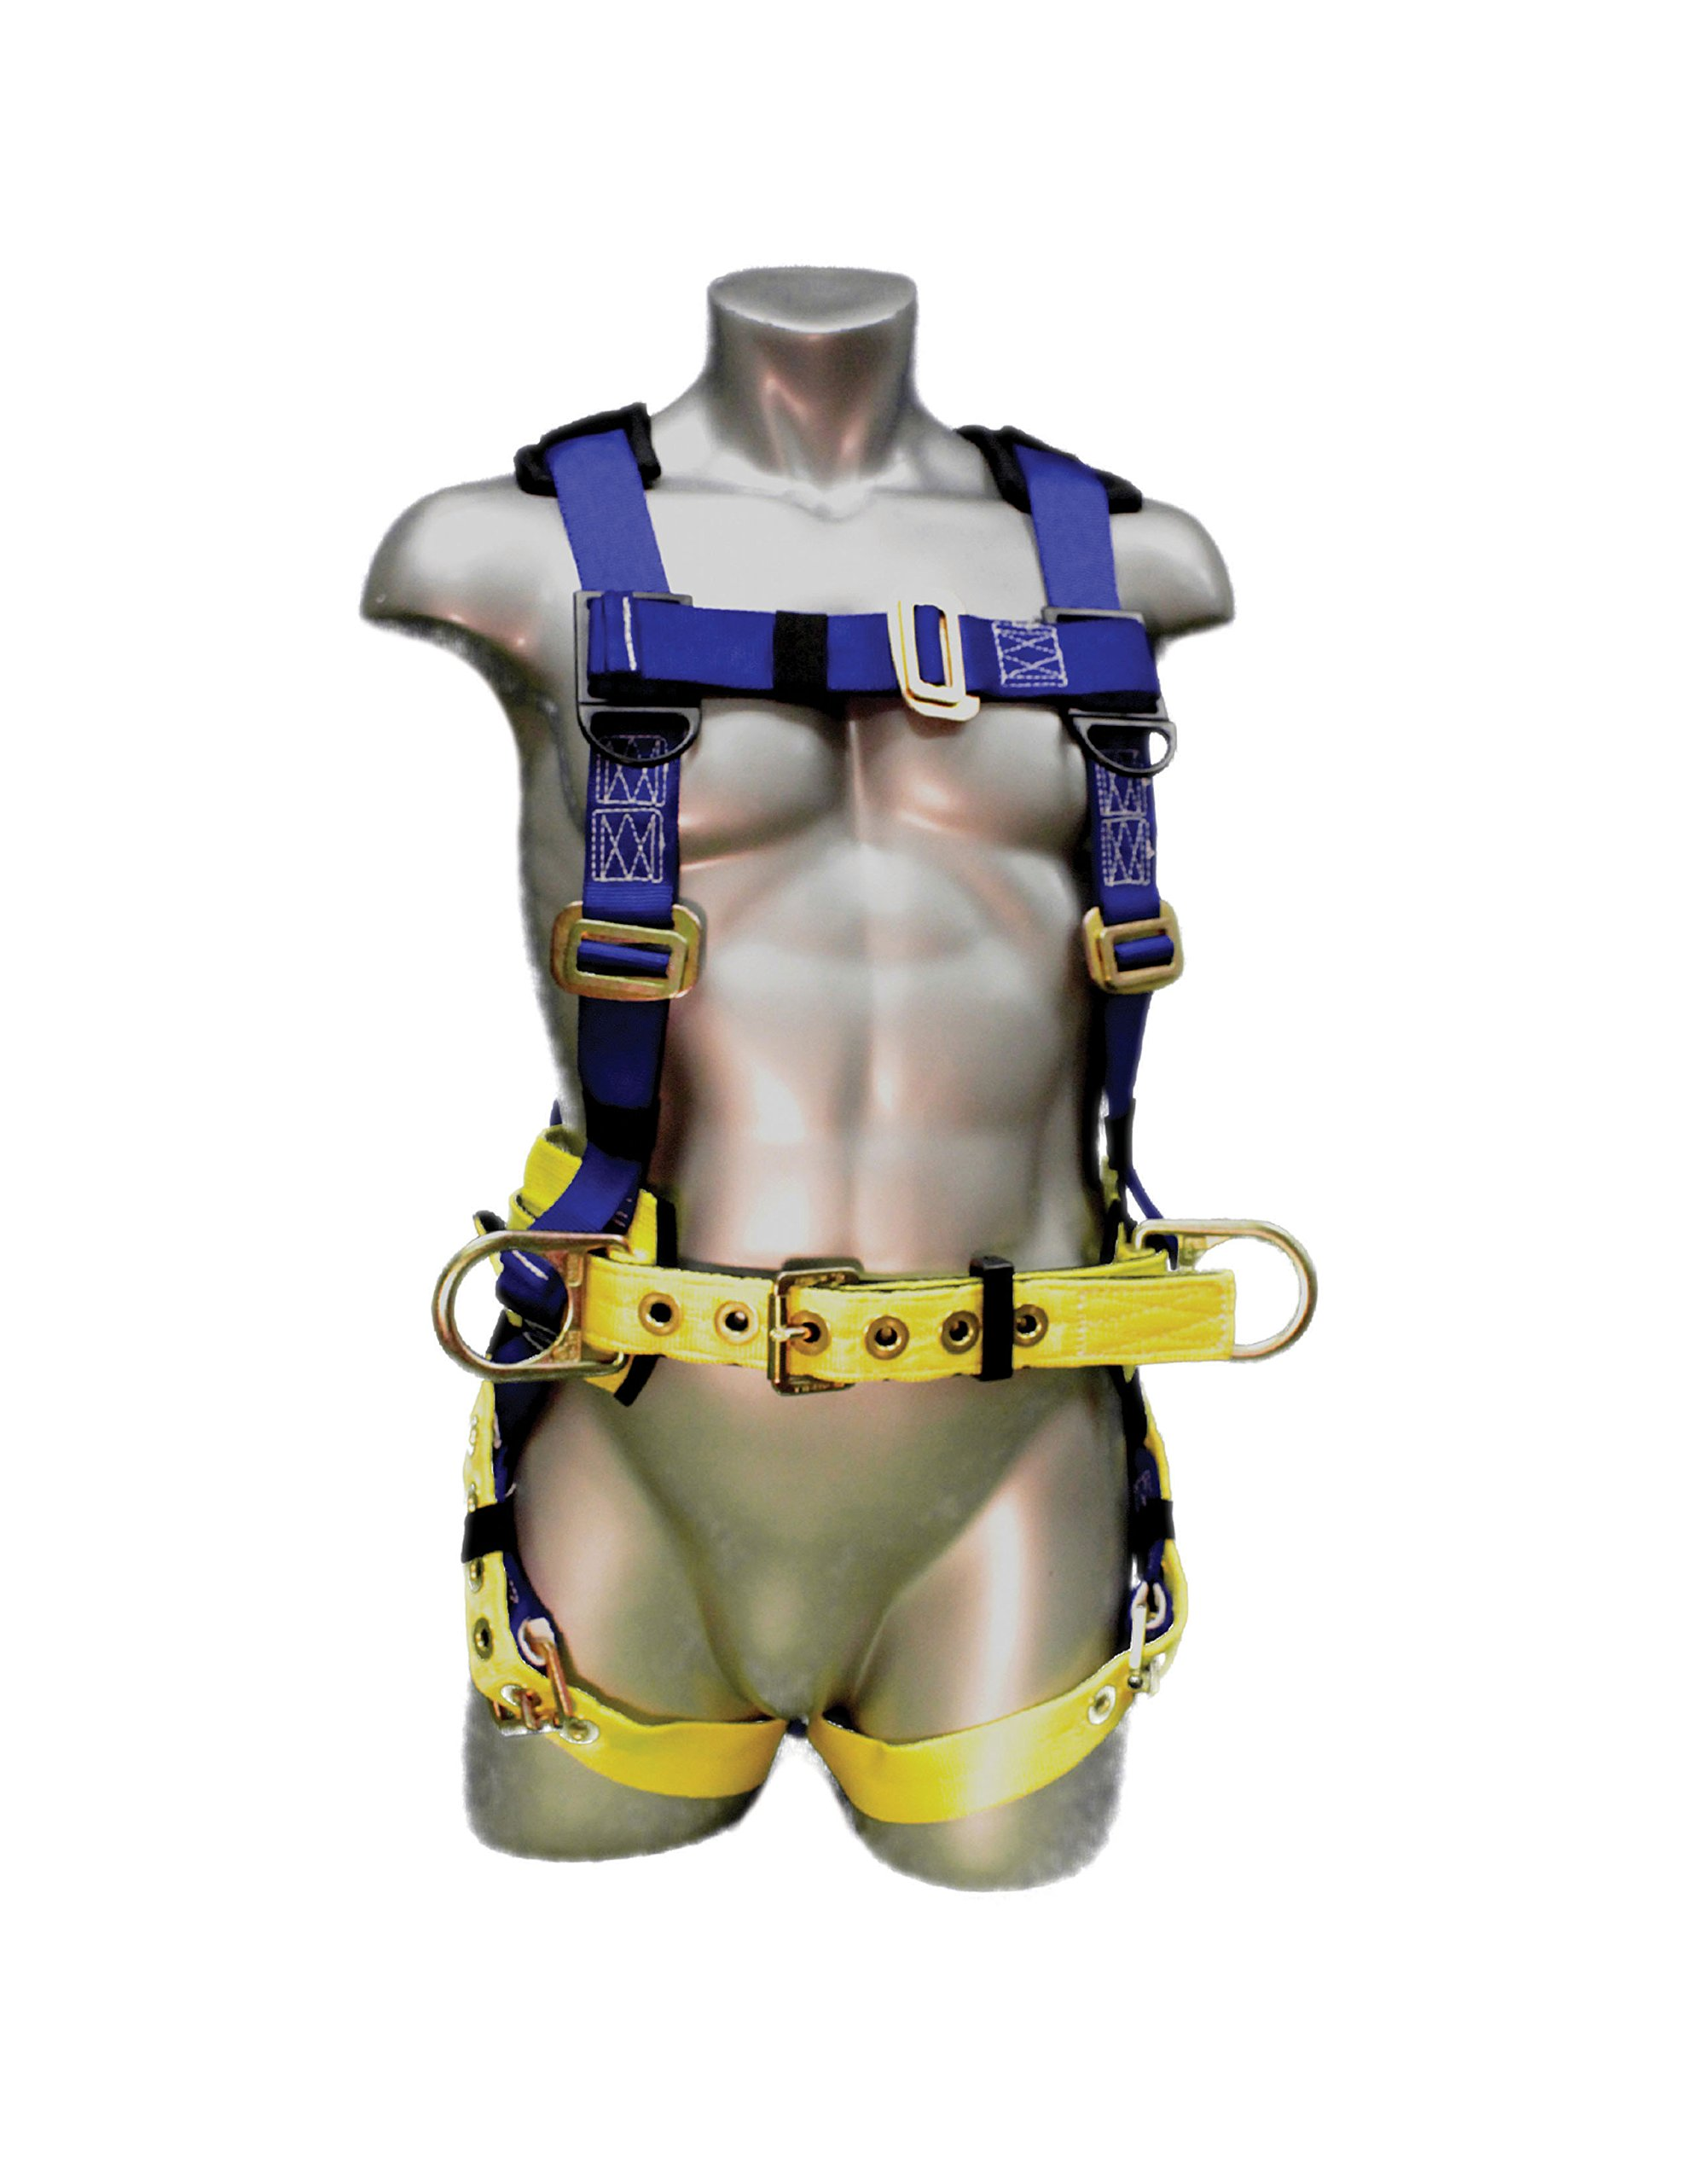 Elk River WorkMaster Harness with Tongue Buckles, 3 D-Rings, Polyester/Nylon, Medium by Elk River (Image #1)